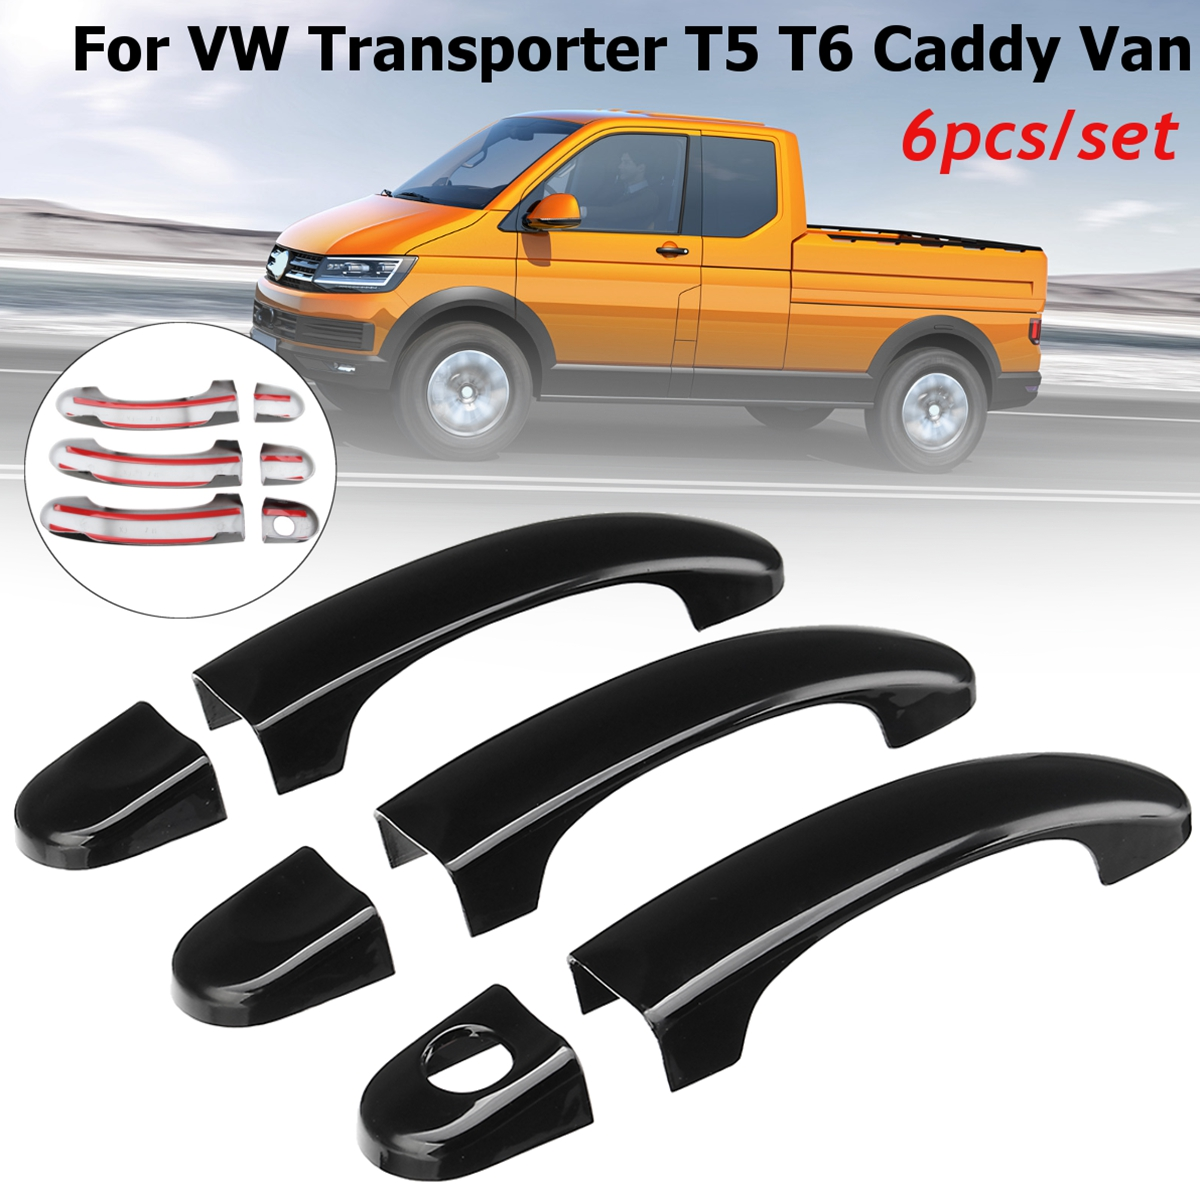 цена на 6pcs Set ABS Gloss Black Car Door Handle Covers For VW T5 TRANSPORTER 2003-2015 for T6 TRANSPORTER 2015-up for CADDY VAN 04-15